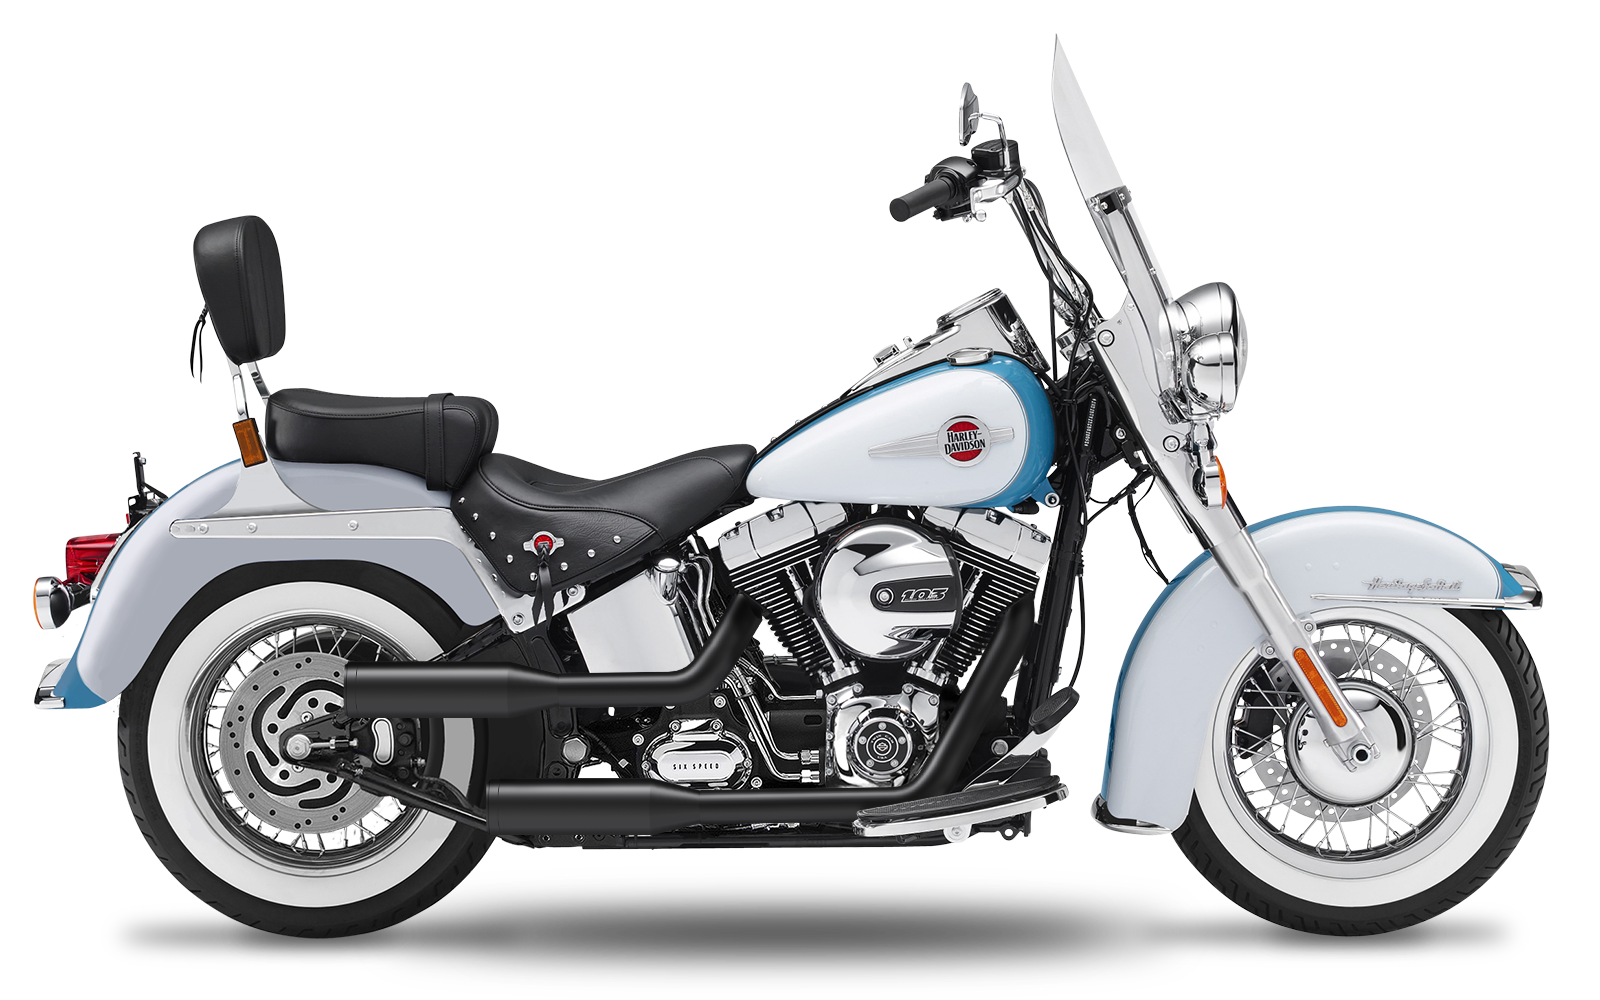 Softail - Heritage Classic - TC88 - 2000-2006 - Complete systems adjustable